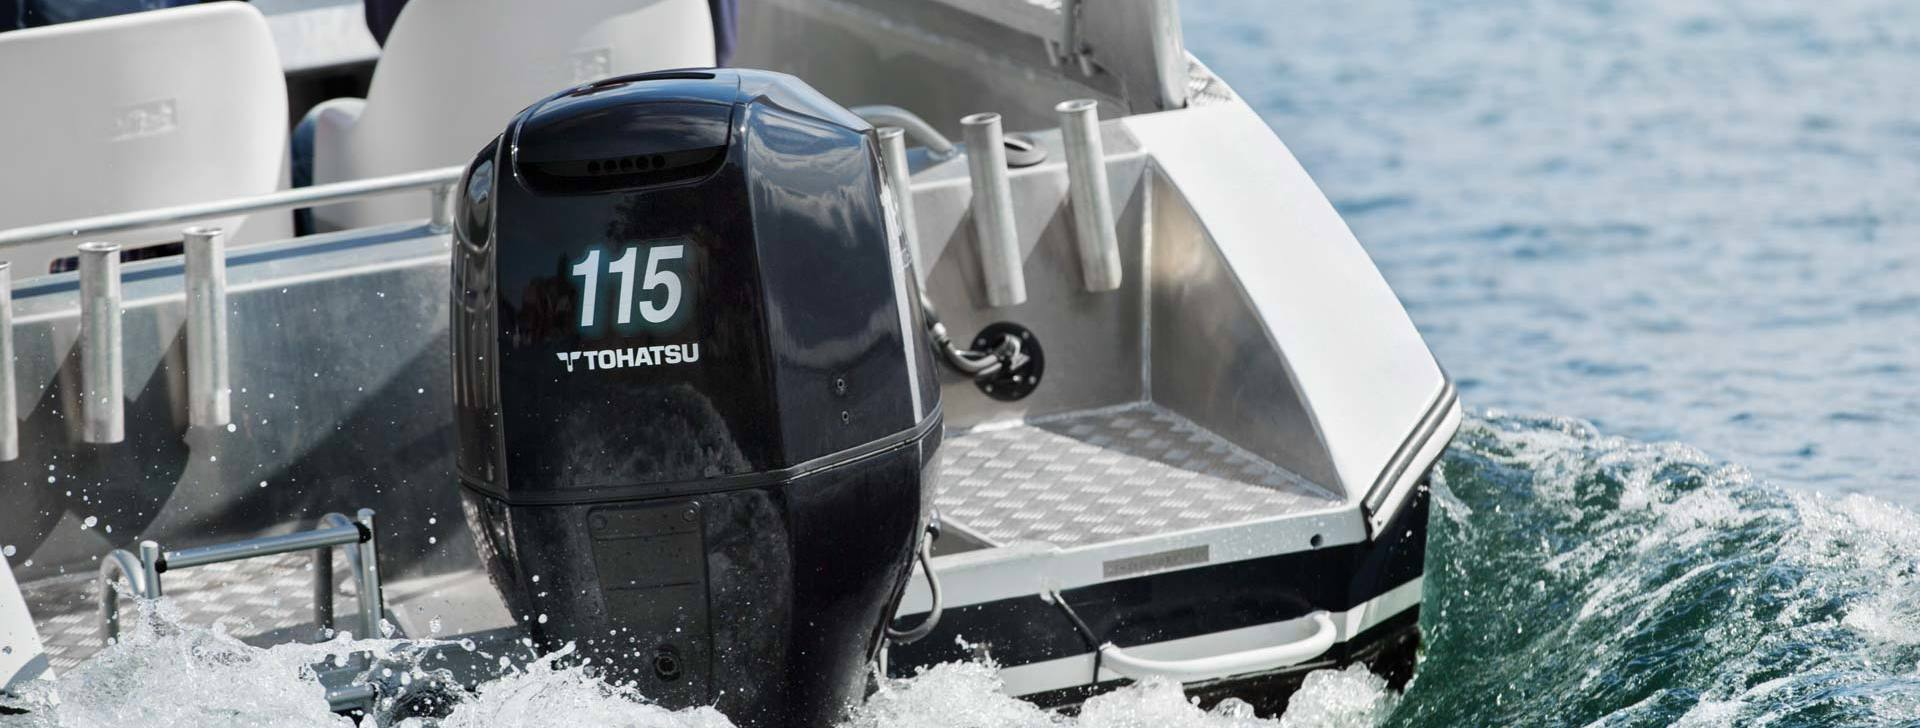 Tohatsu Outboard Motors from Winsor Marine